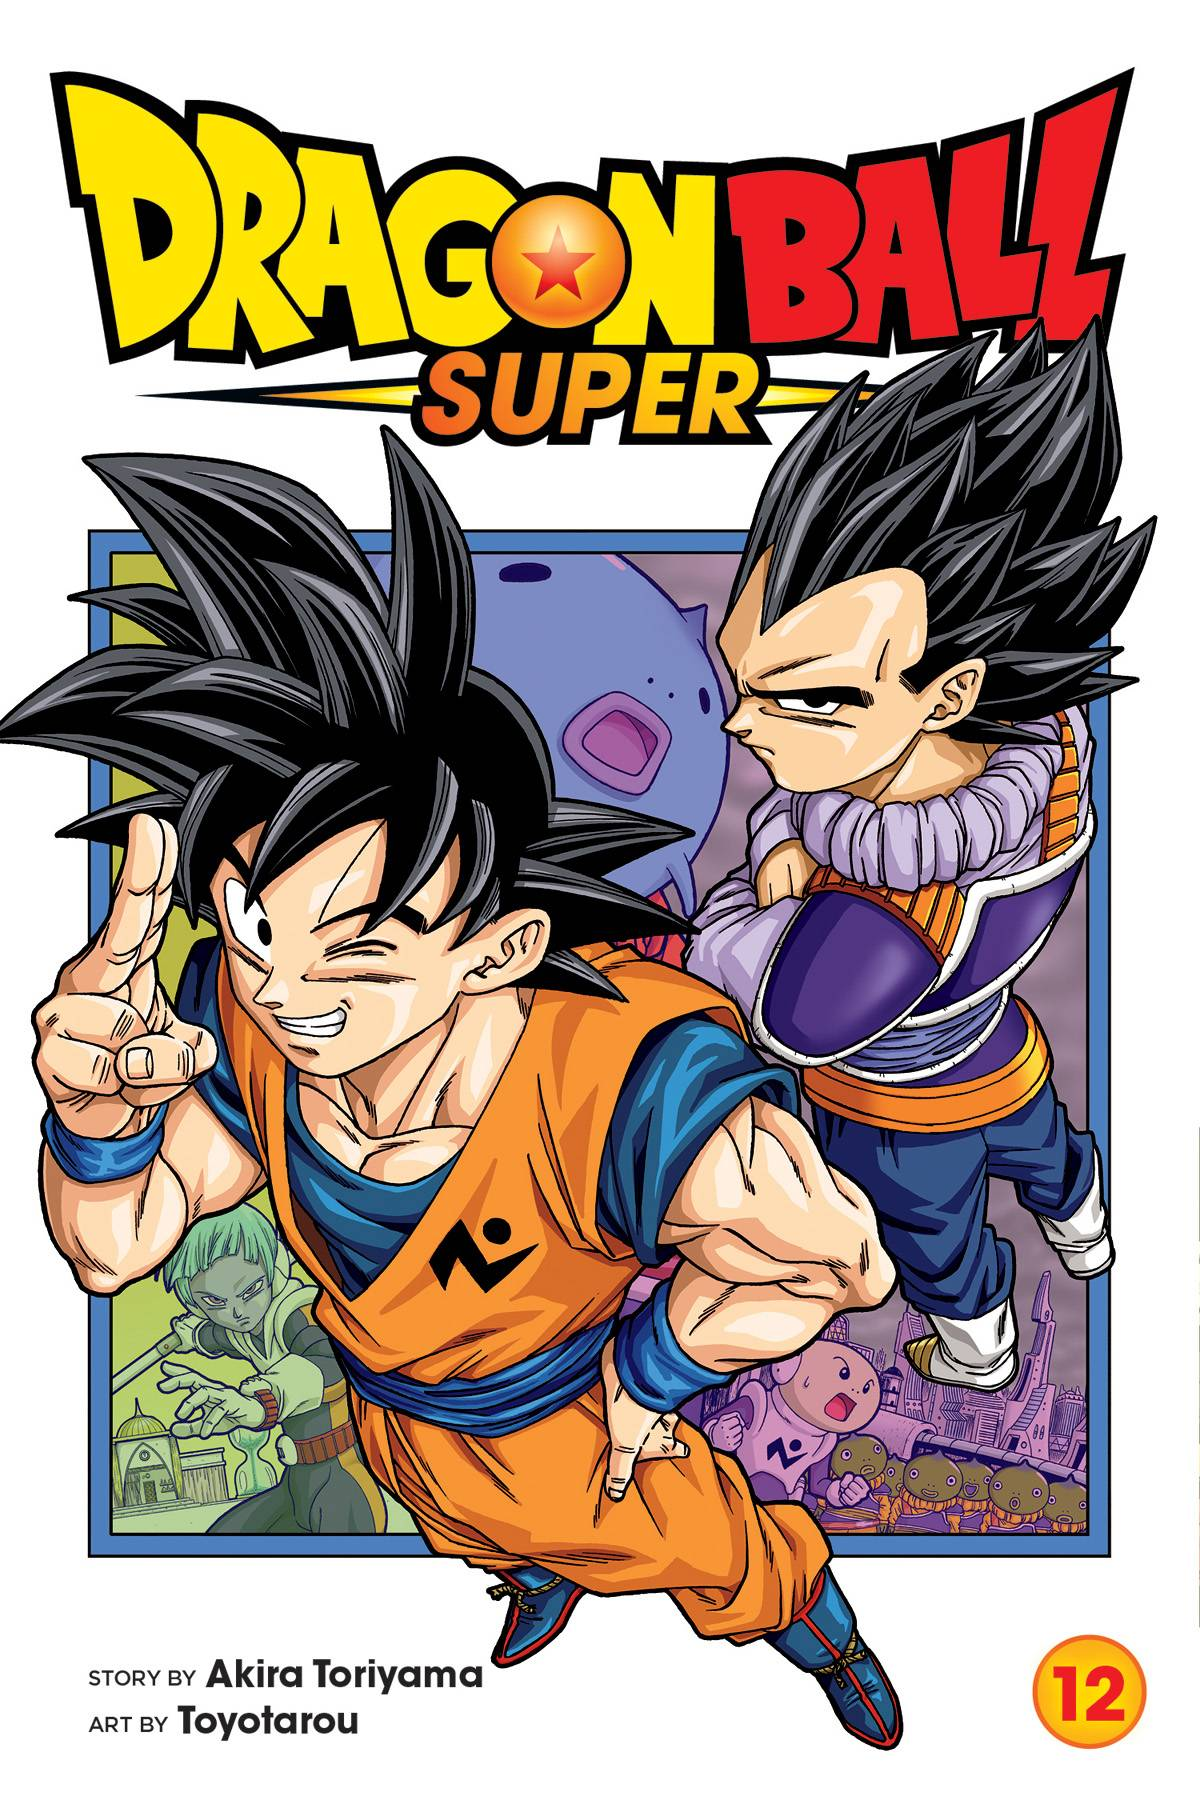 DRAGON BALL SUPER GN VOL 12